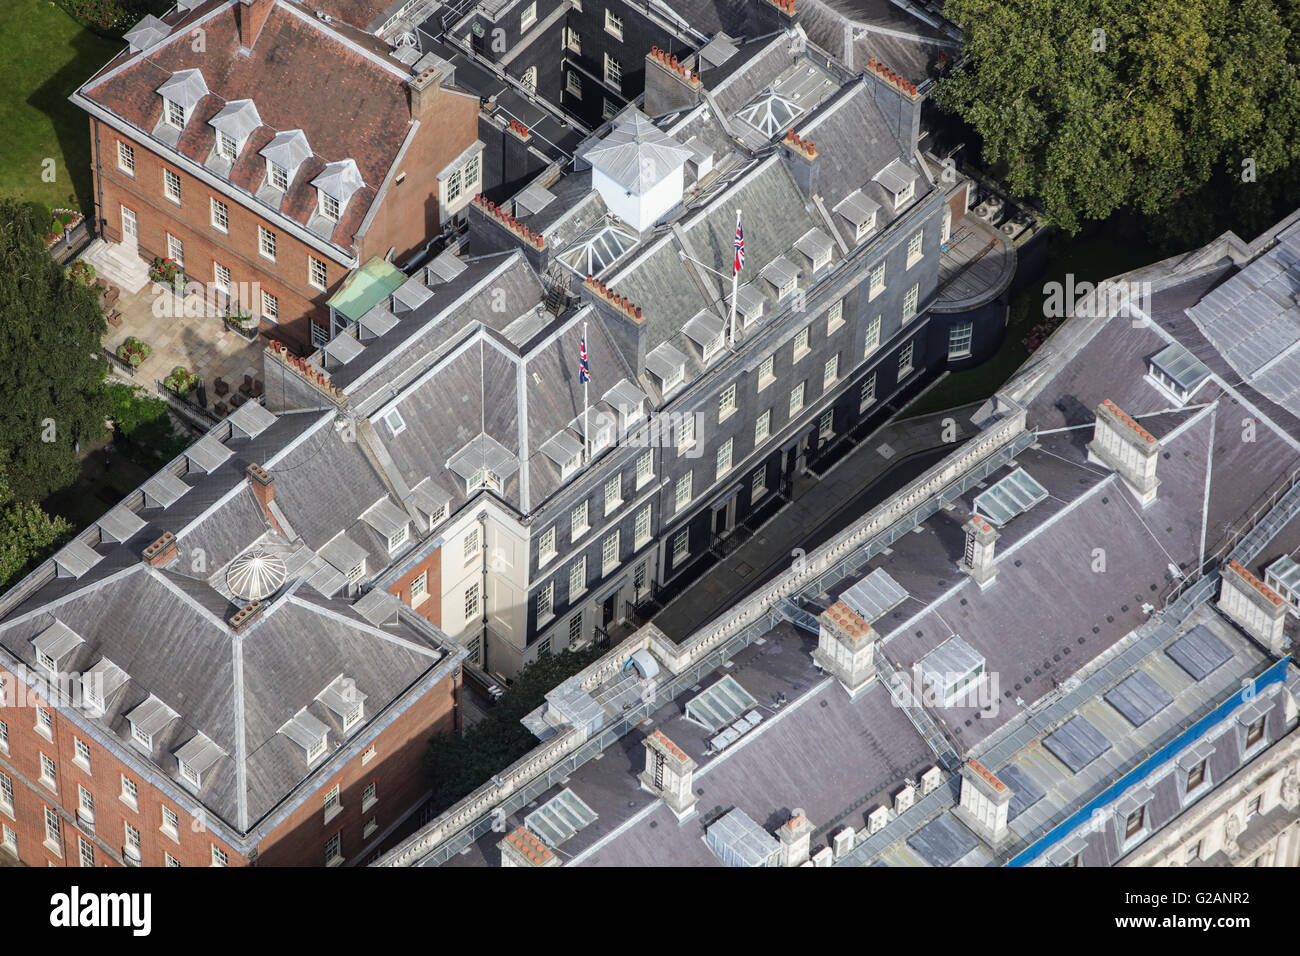 An aerial view of Downing Street in Whitehall, London - Stock Image